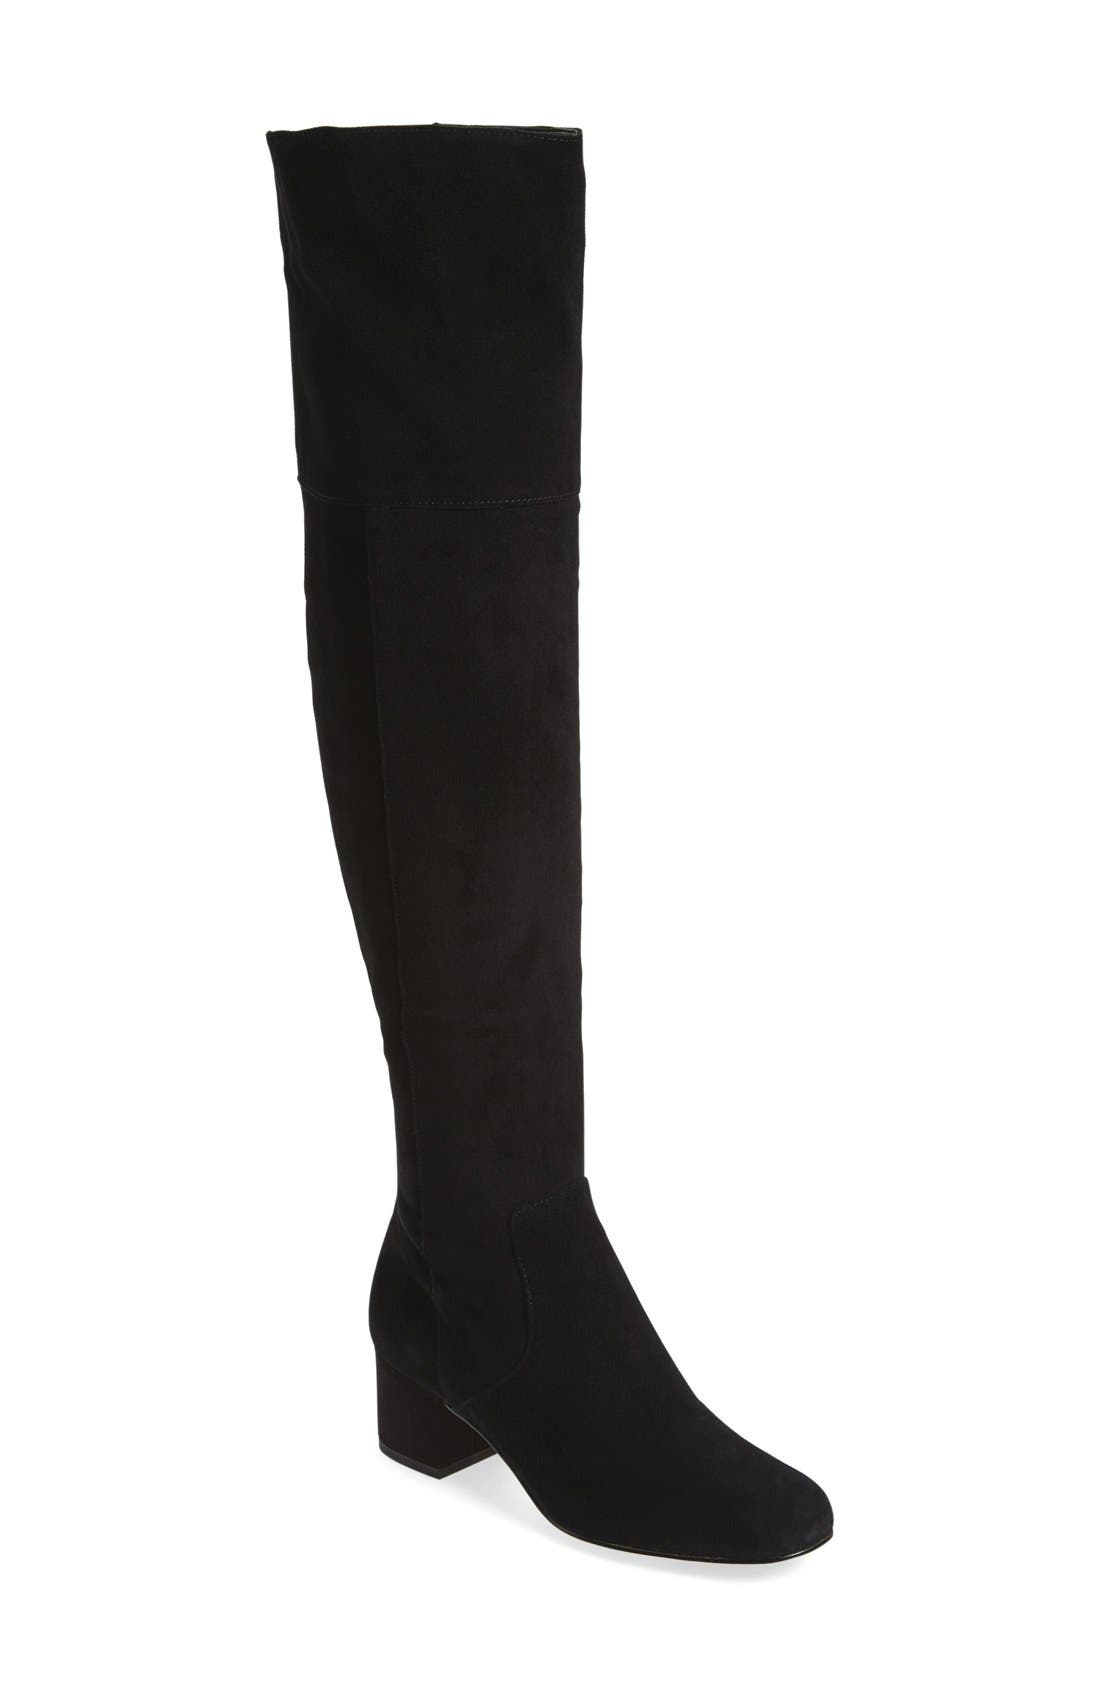 'Elina' Over the Knee Boot,                             Main thumbnail 1, color,                             Black Suede Leather